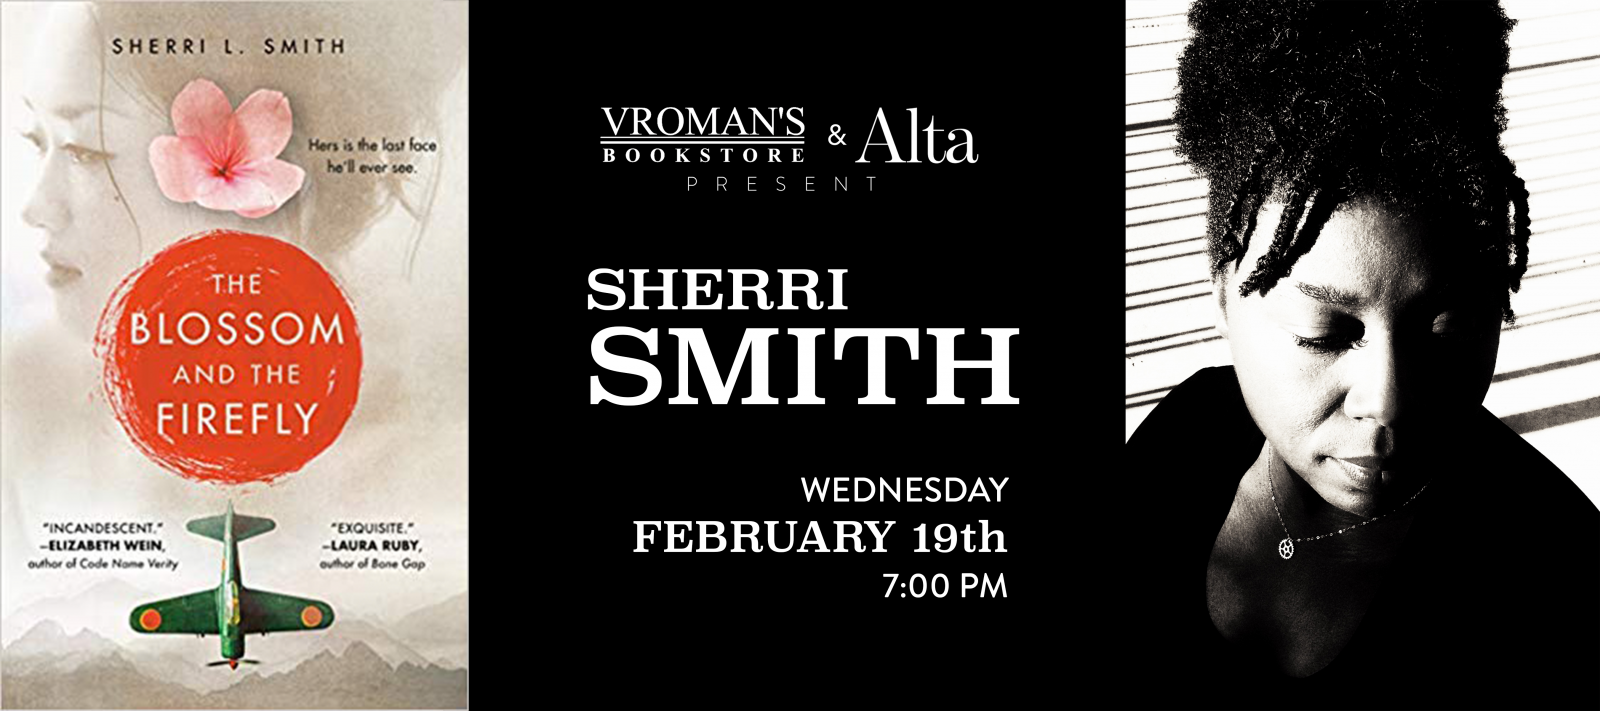 Sherri Smith book signing on Wednesday, February 19, at 7pm